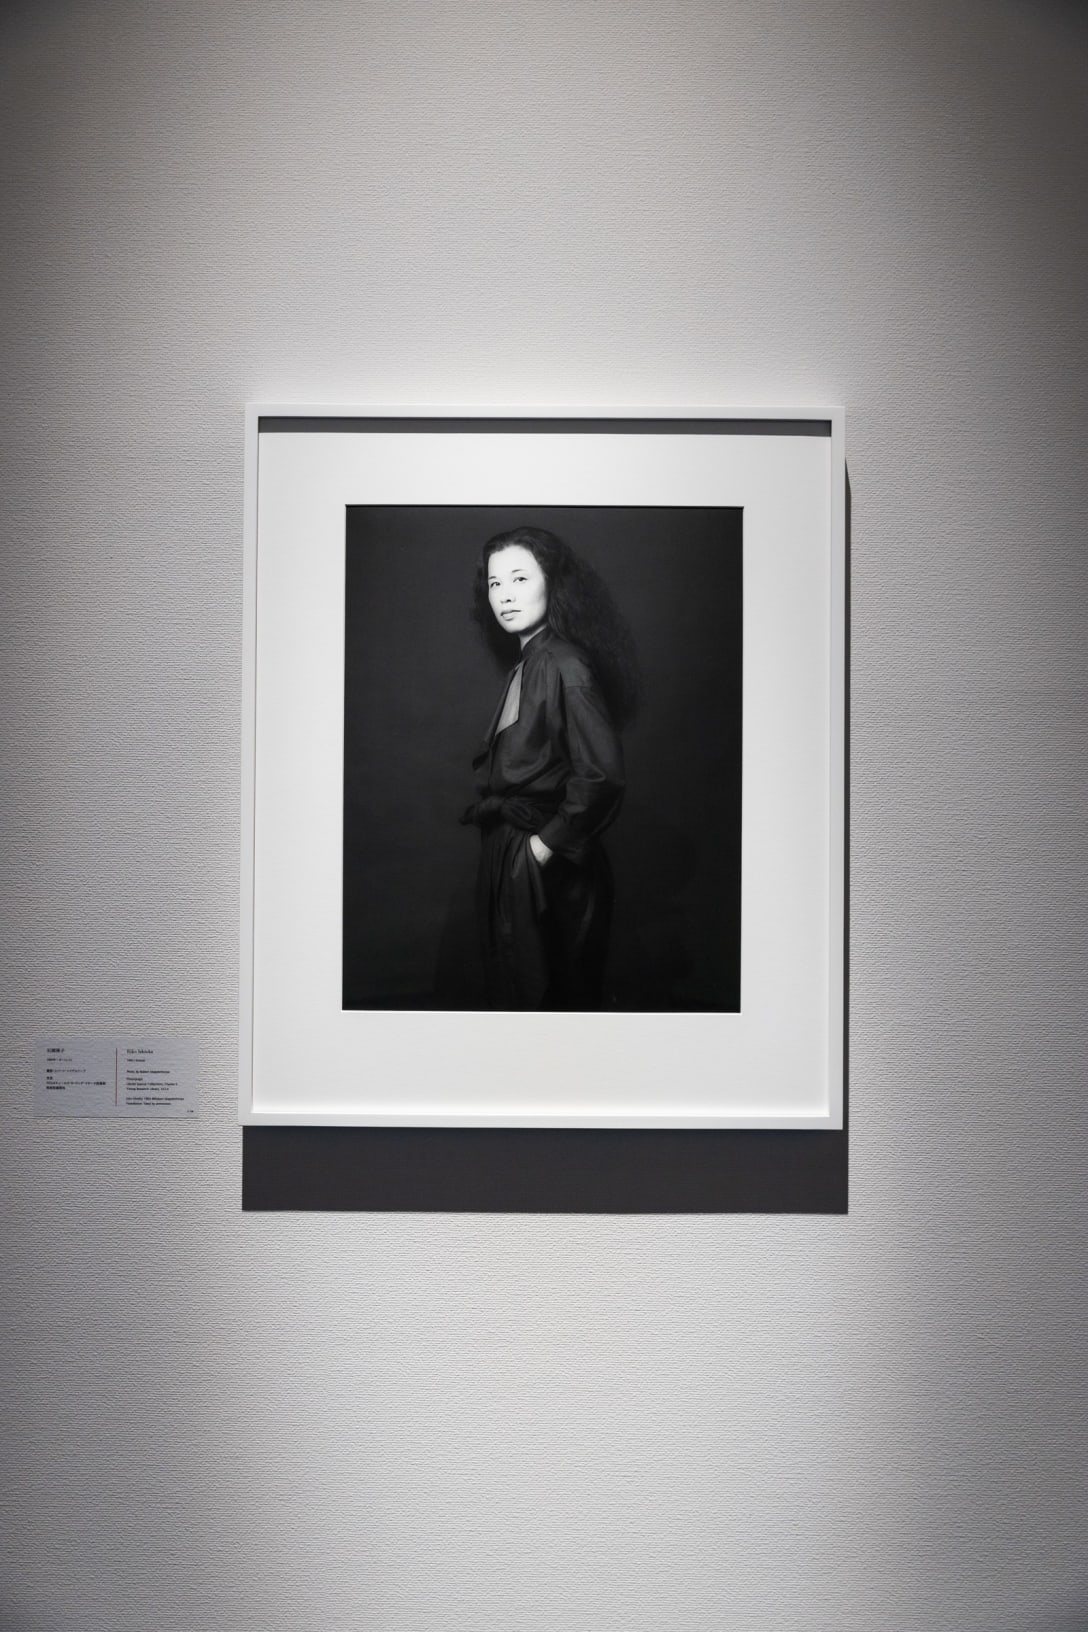 展示風景より 石岡瑛子 1983年  Image by Robert Mapplethorpe    ©Robert Mapplethorpe Foundation. Used by permission.